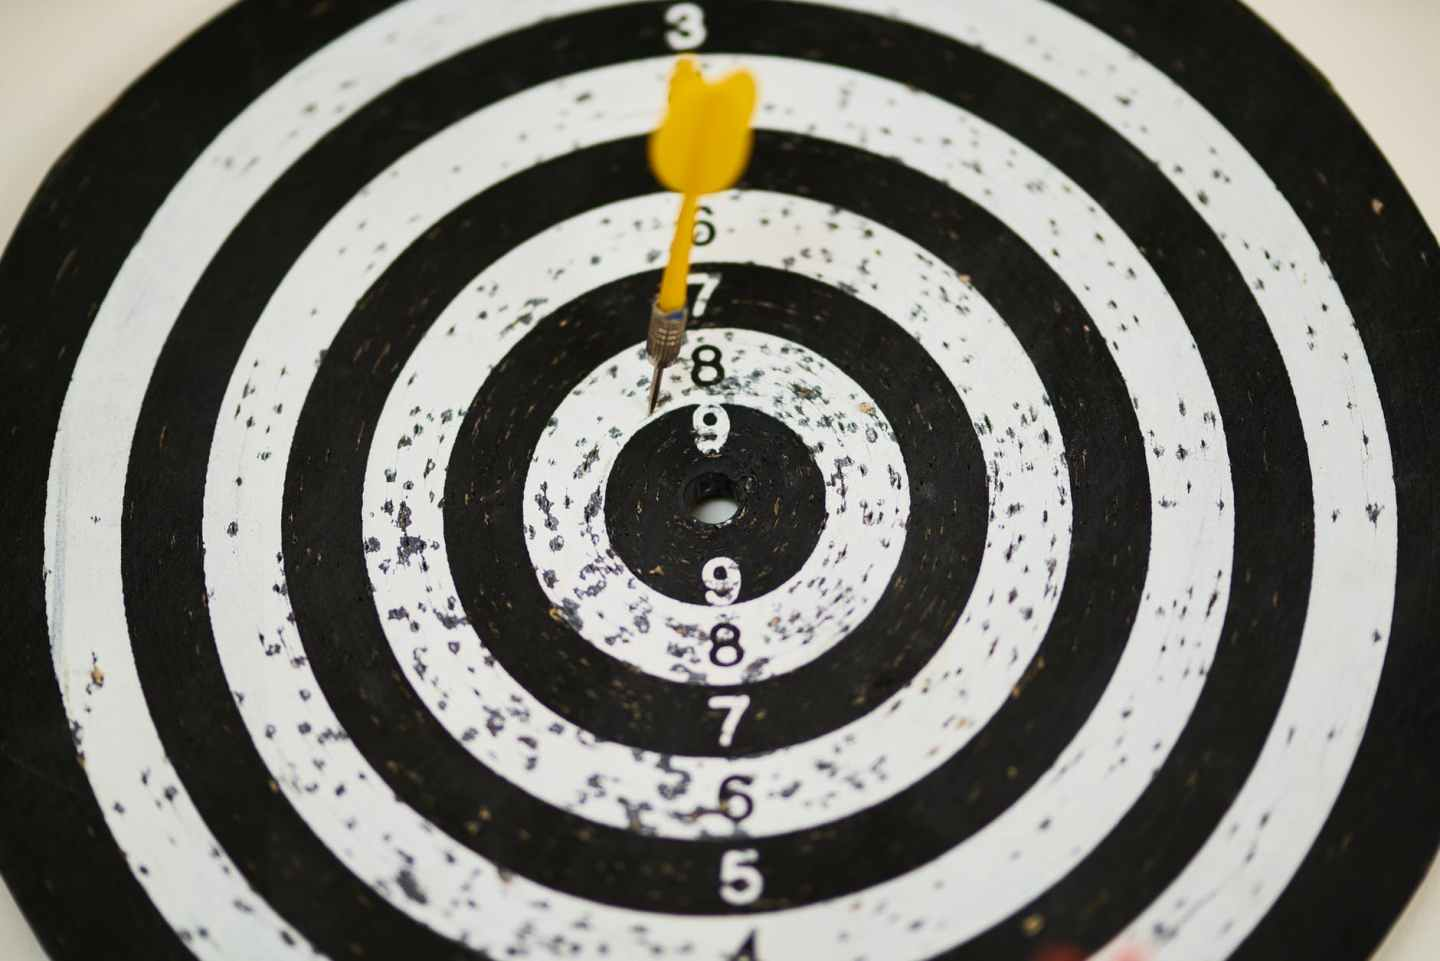 Finding your purpose is like aiming for a bullseye on a dartboard